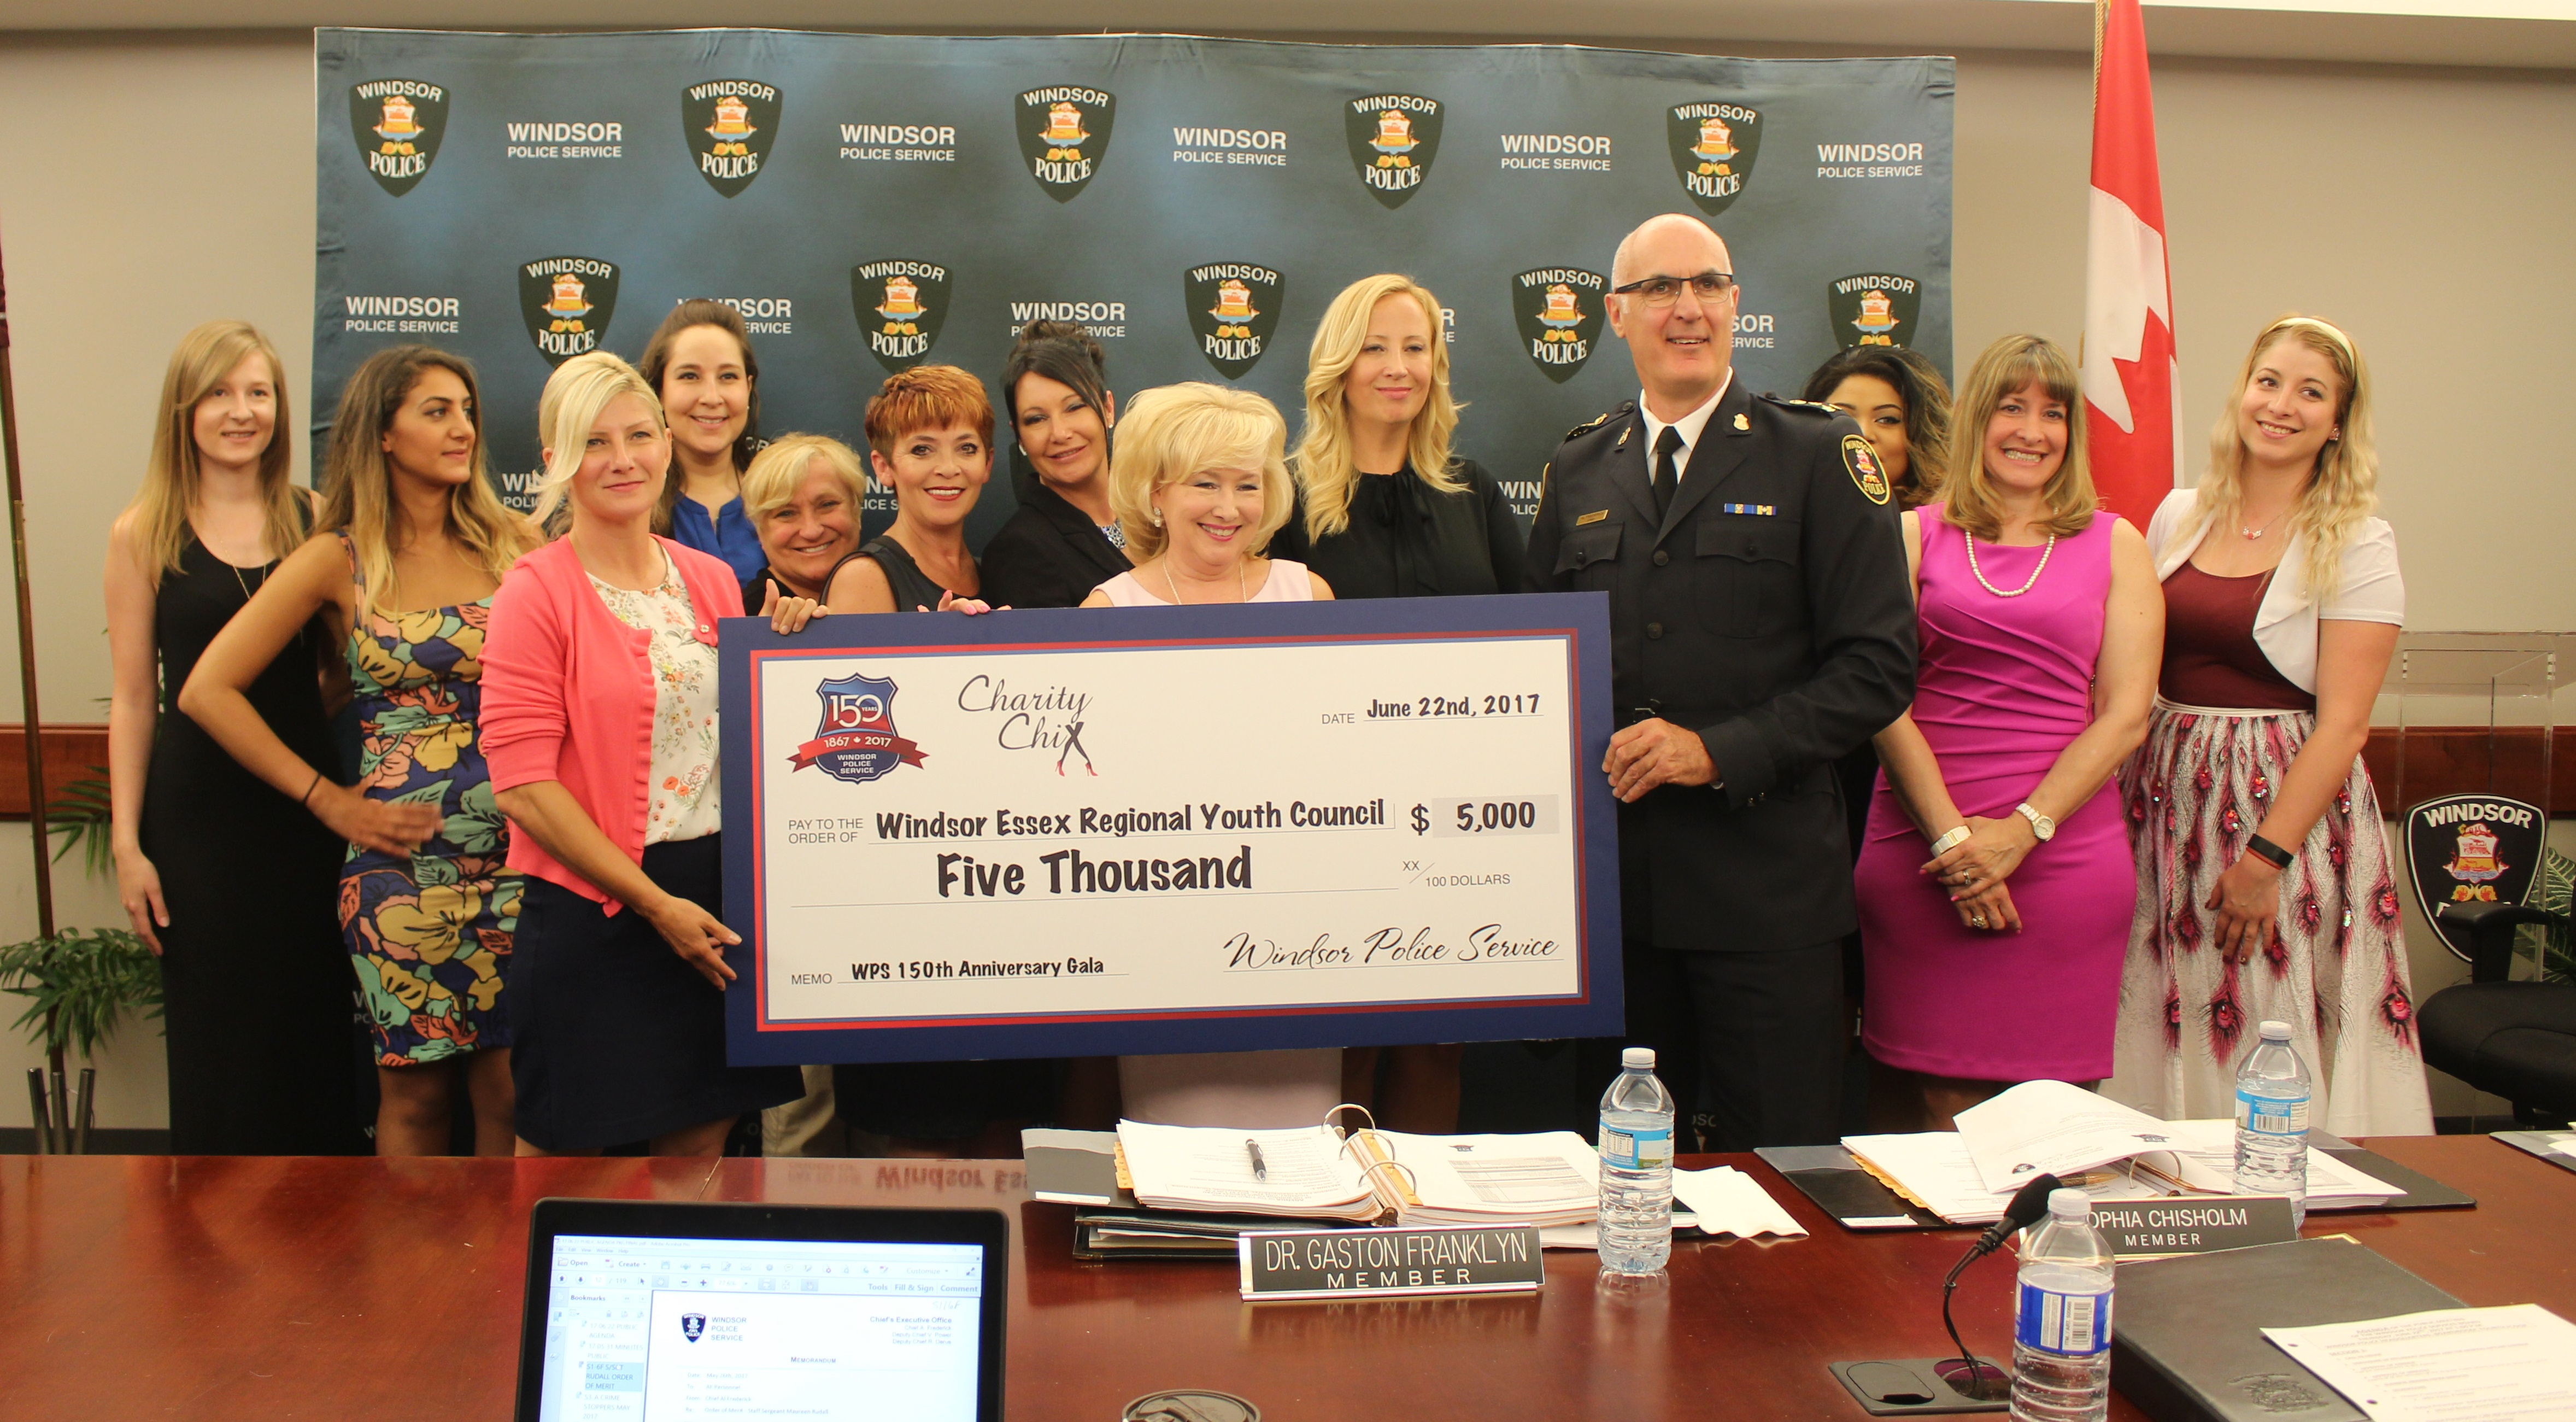 WPS 150th Supports Children's Charities